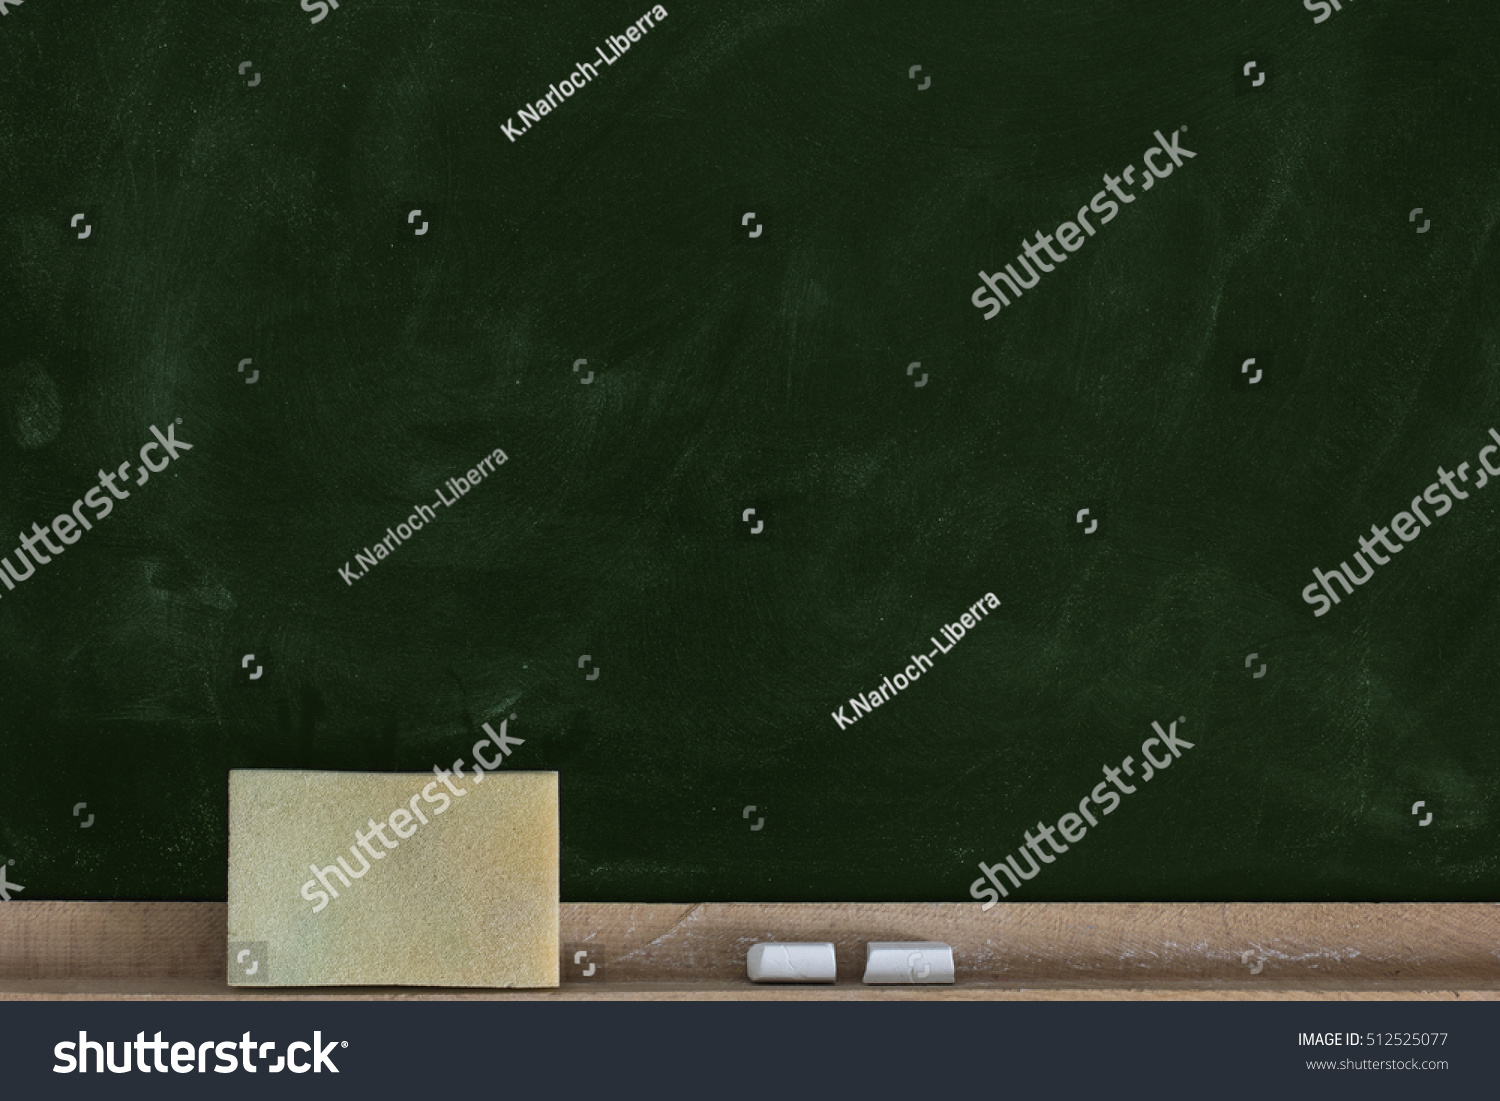 Empty Chalkboard Background With Chalk And Sponge